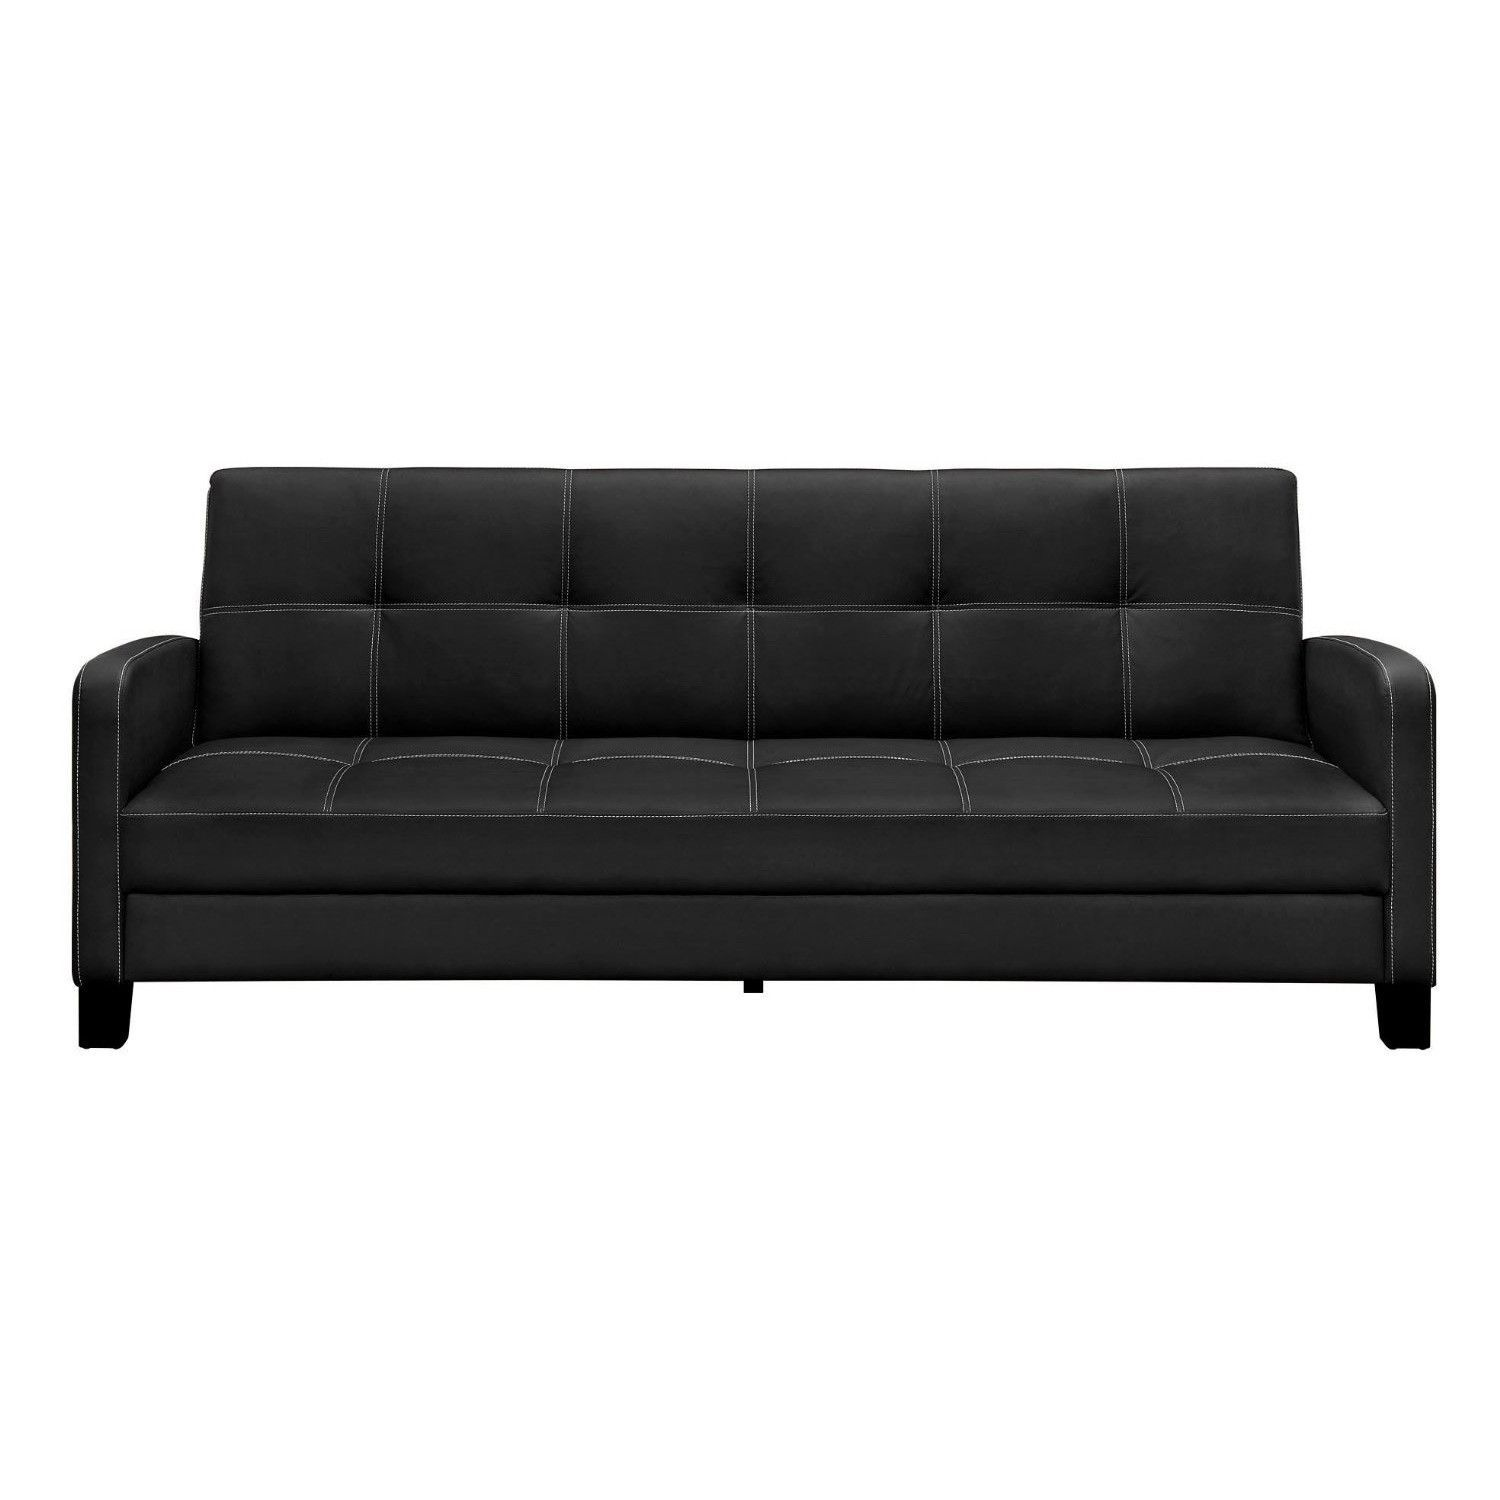 Clic Black Faux Leather Futon Sofa Sleeper